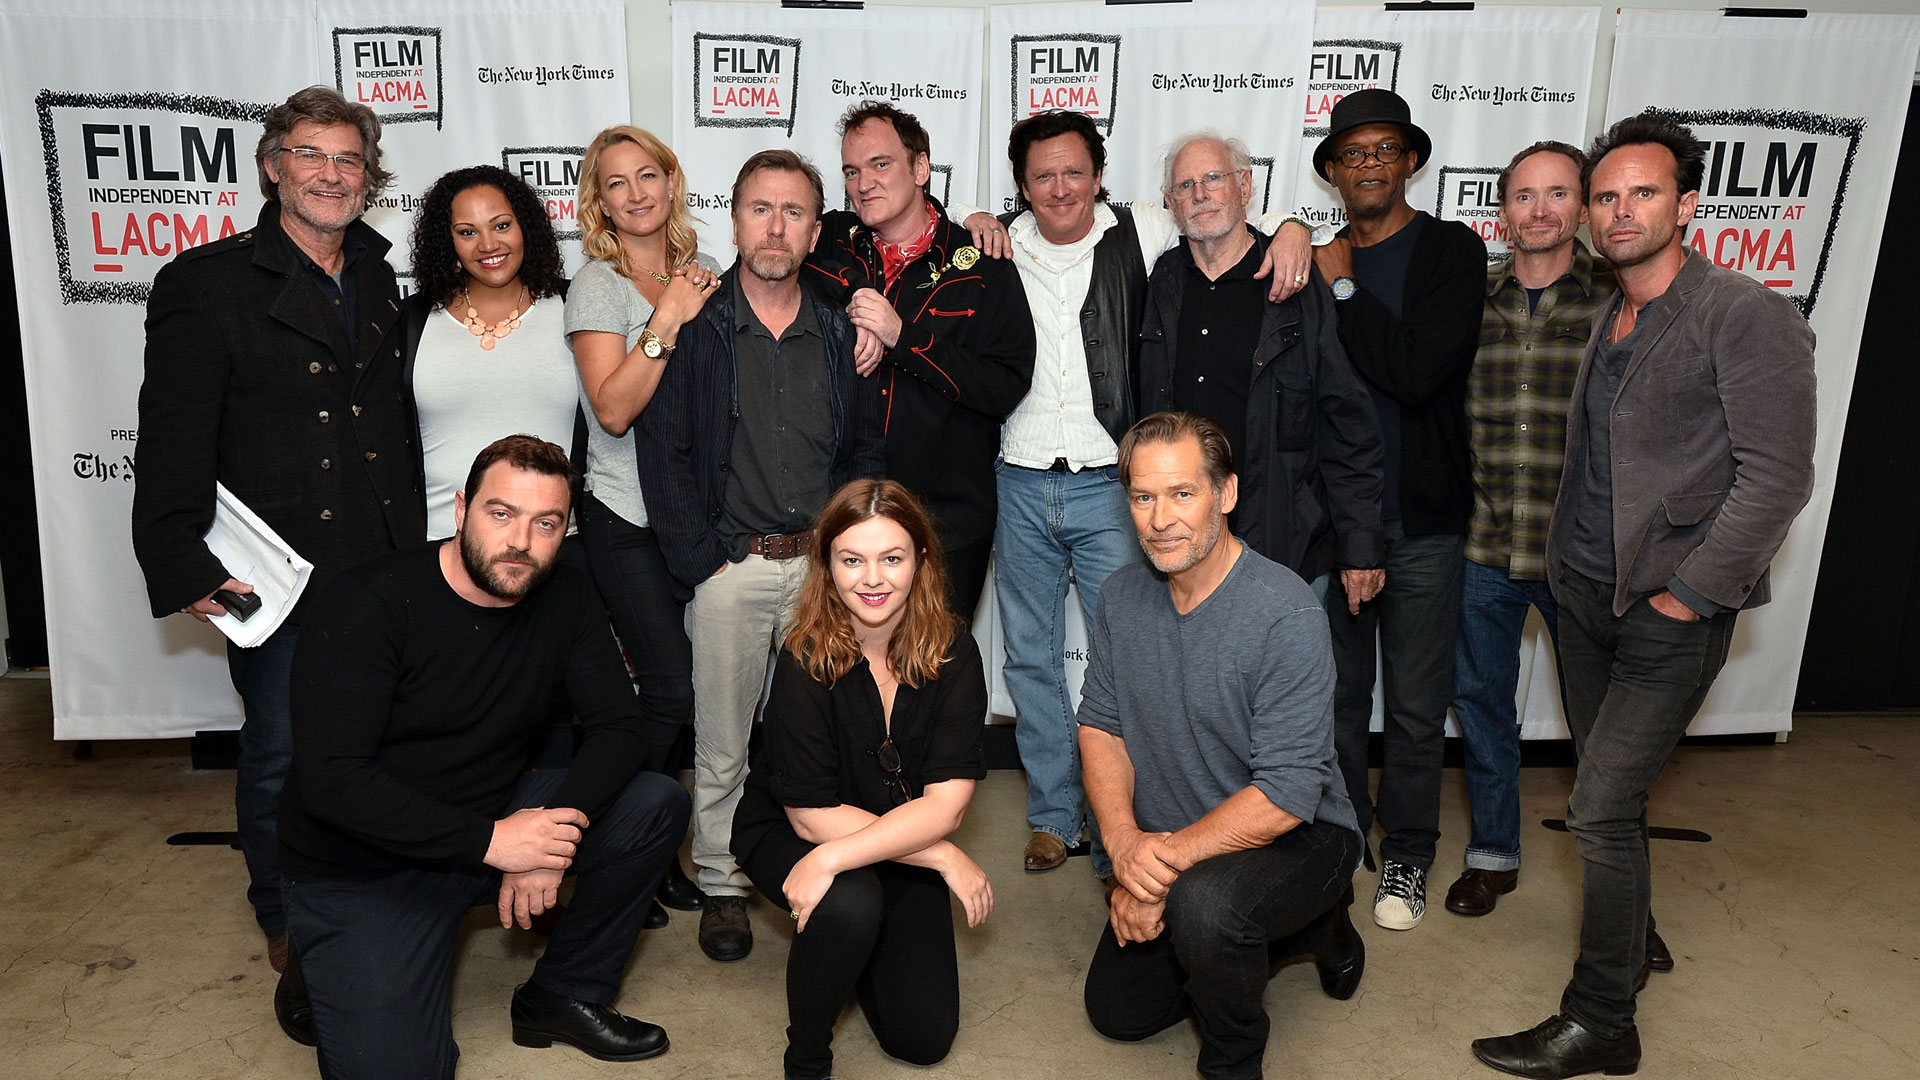 Quentin Tarantino's The Hateful Eight staged reading